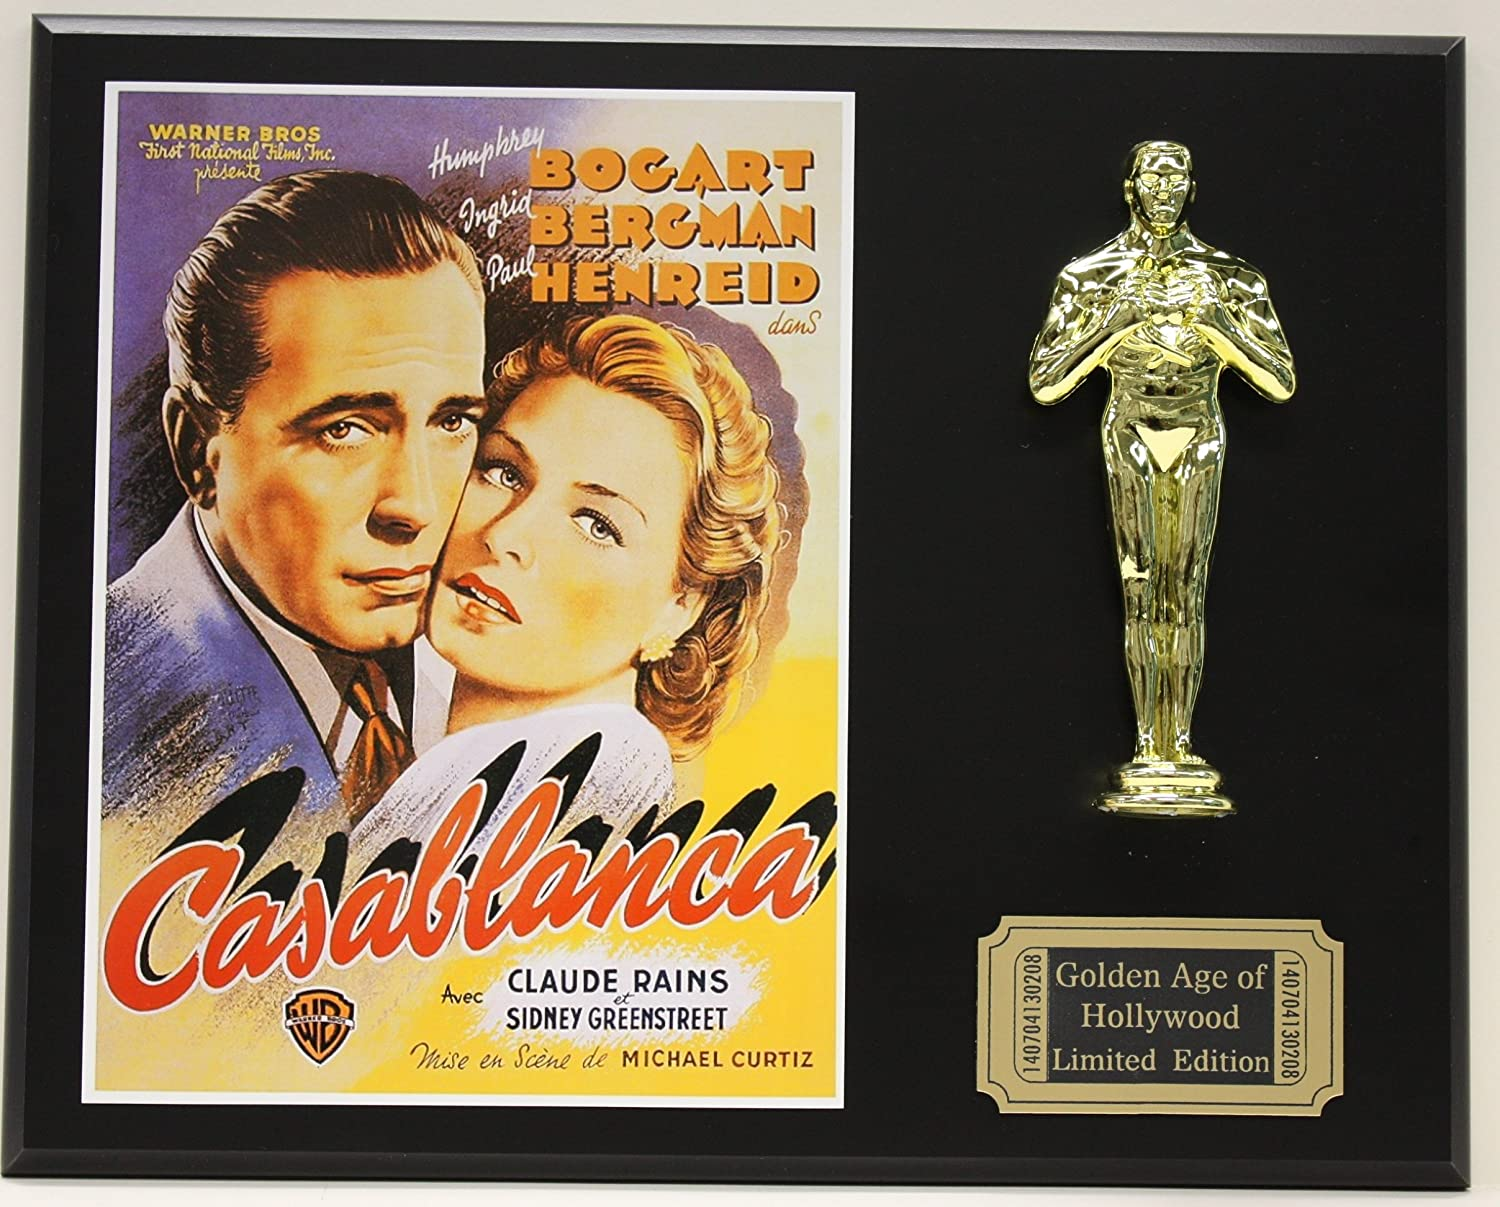 Casablanca, Humphrey Bogart LTD Edition Oscar Movie Poster Display modern fabric upholstered rectangle living room ottoman stool with natural wooden legs home small bench wood foot stool chair